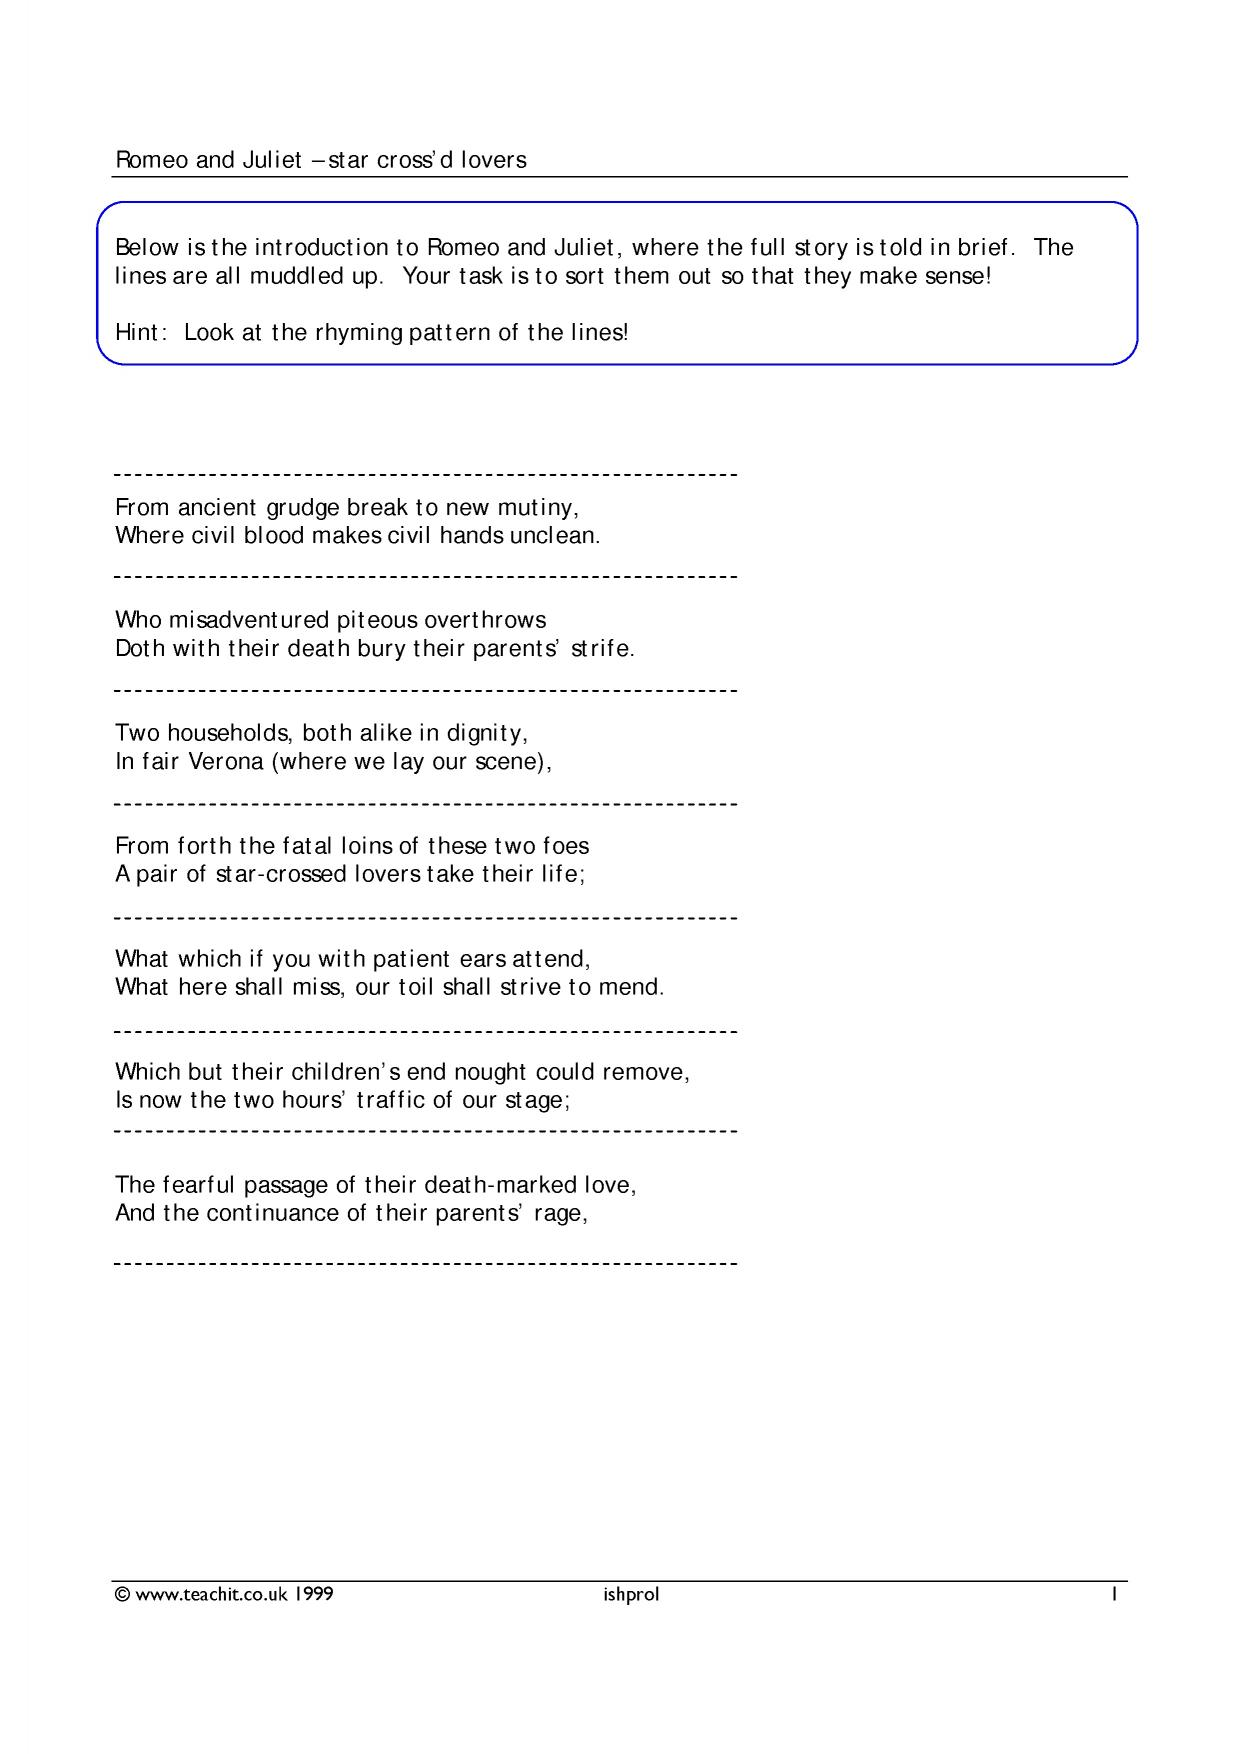 worksheet Romeo And Juliet Prologue Worksheet romeo juliet prologue search results teachit 1 preview